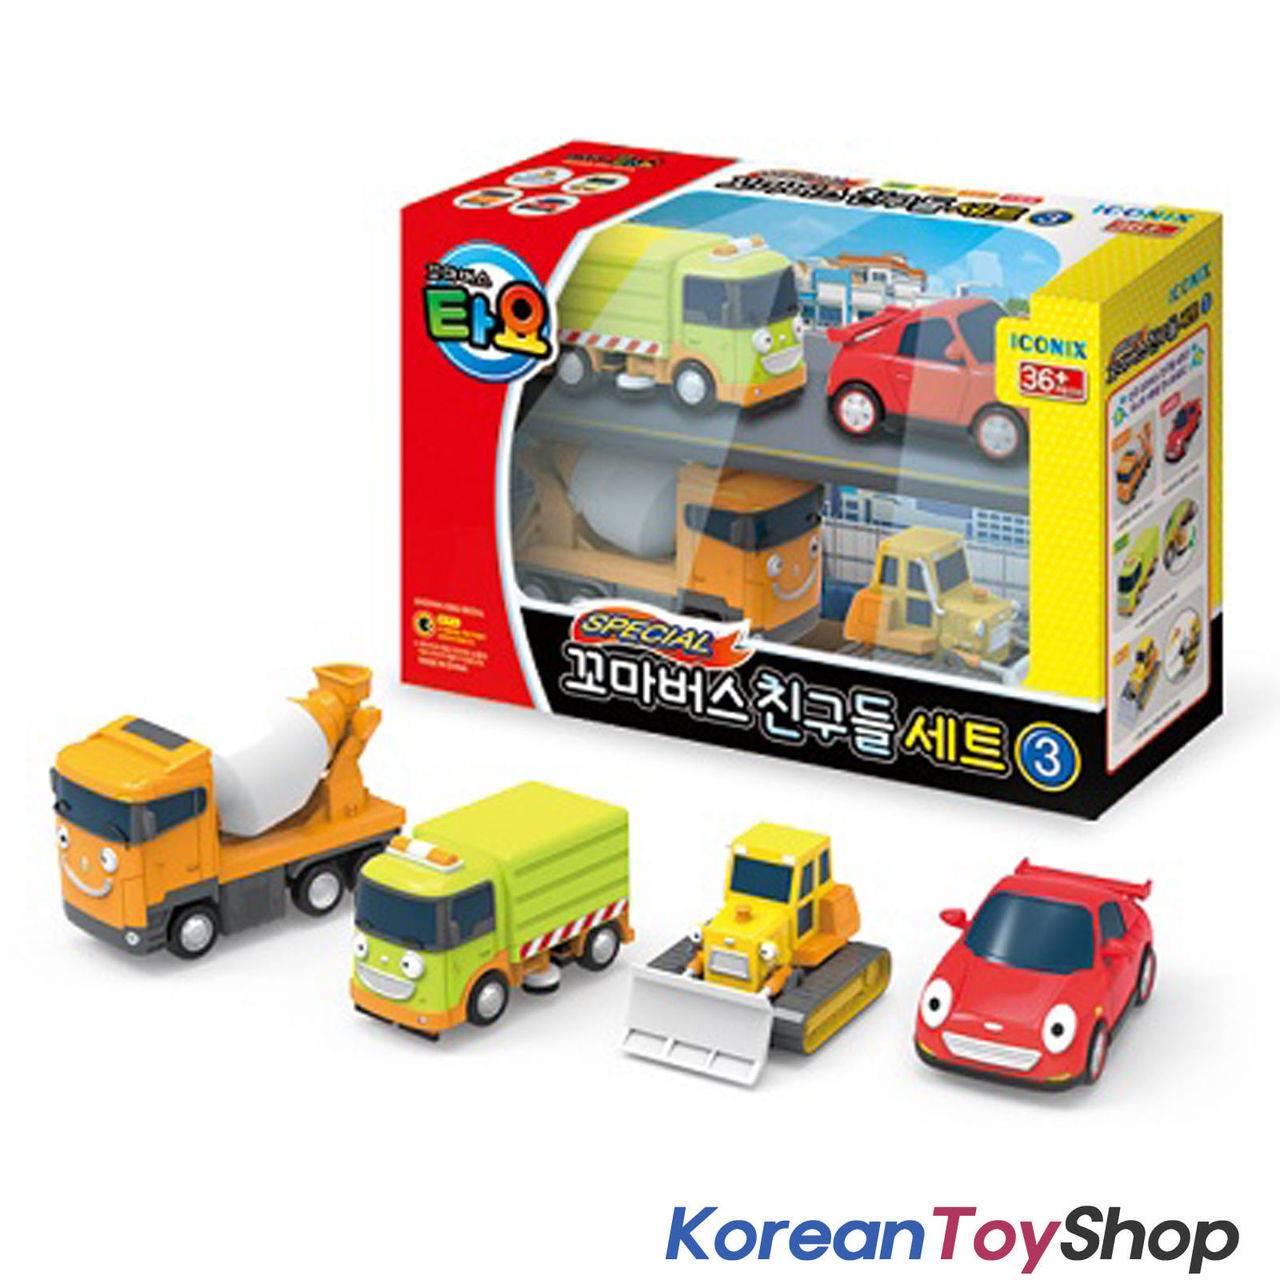 00140 The Little Bus Tayo Friends 4 Pcs Set V 3 Toy Cars Ruby